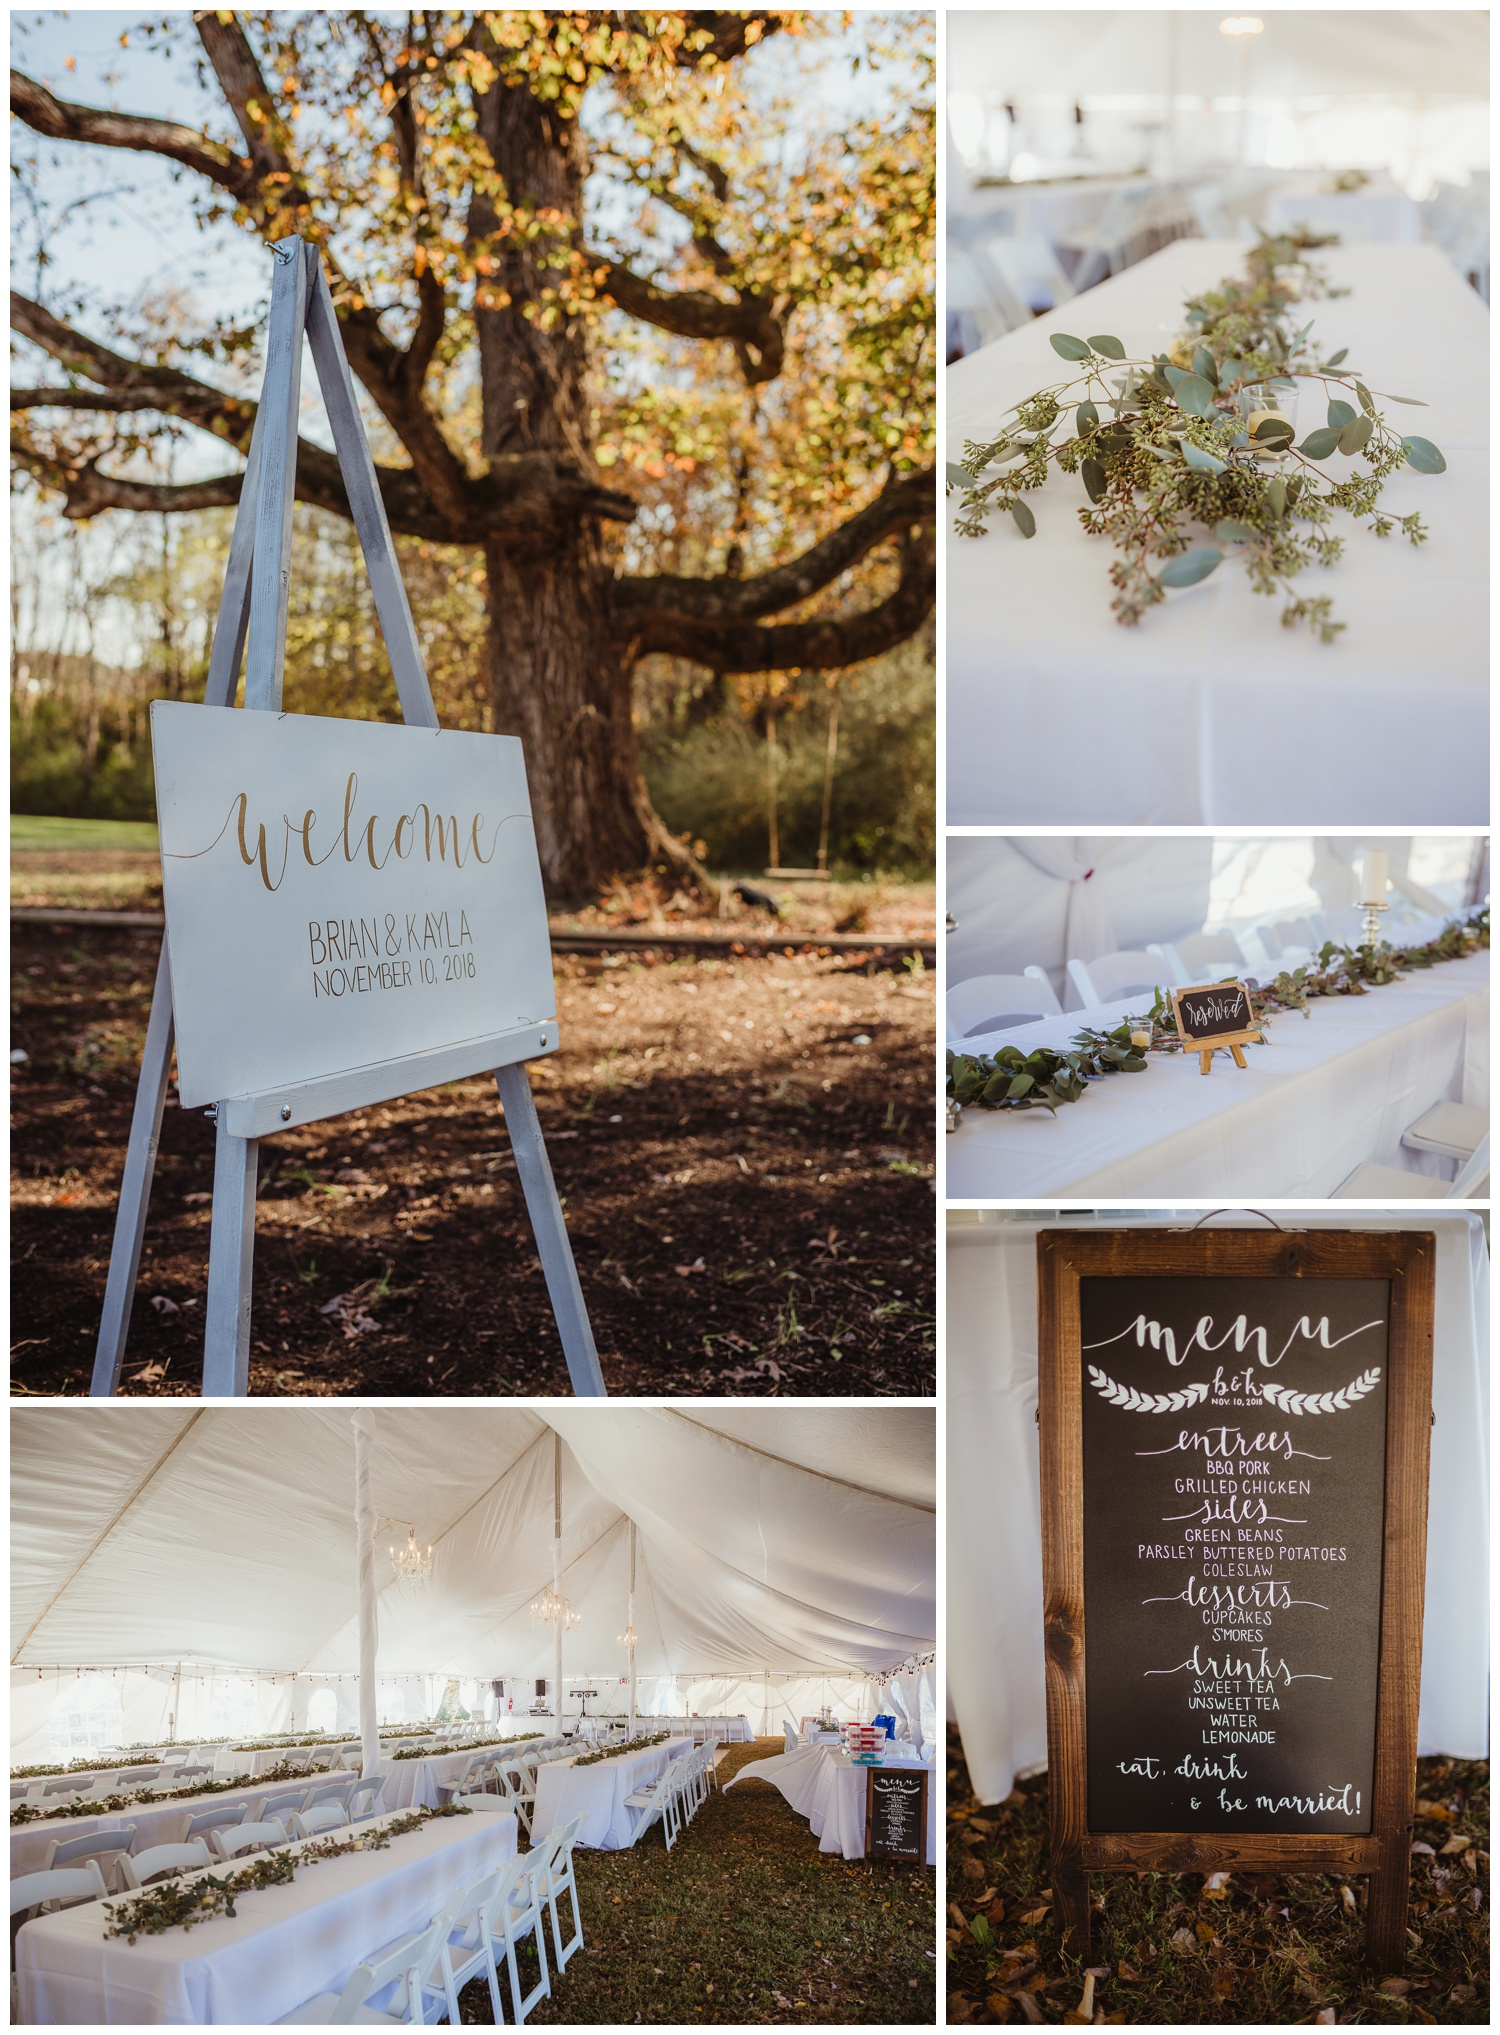 Wedding details for a reception at The Warren Estate included hand written signs and lots of greenery, images by Rose Trail Images of Rolesville, NC.